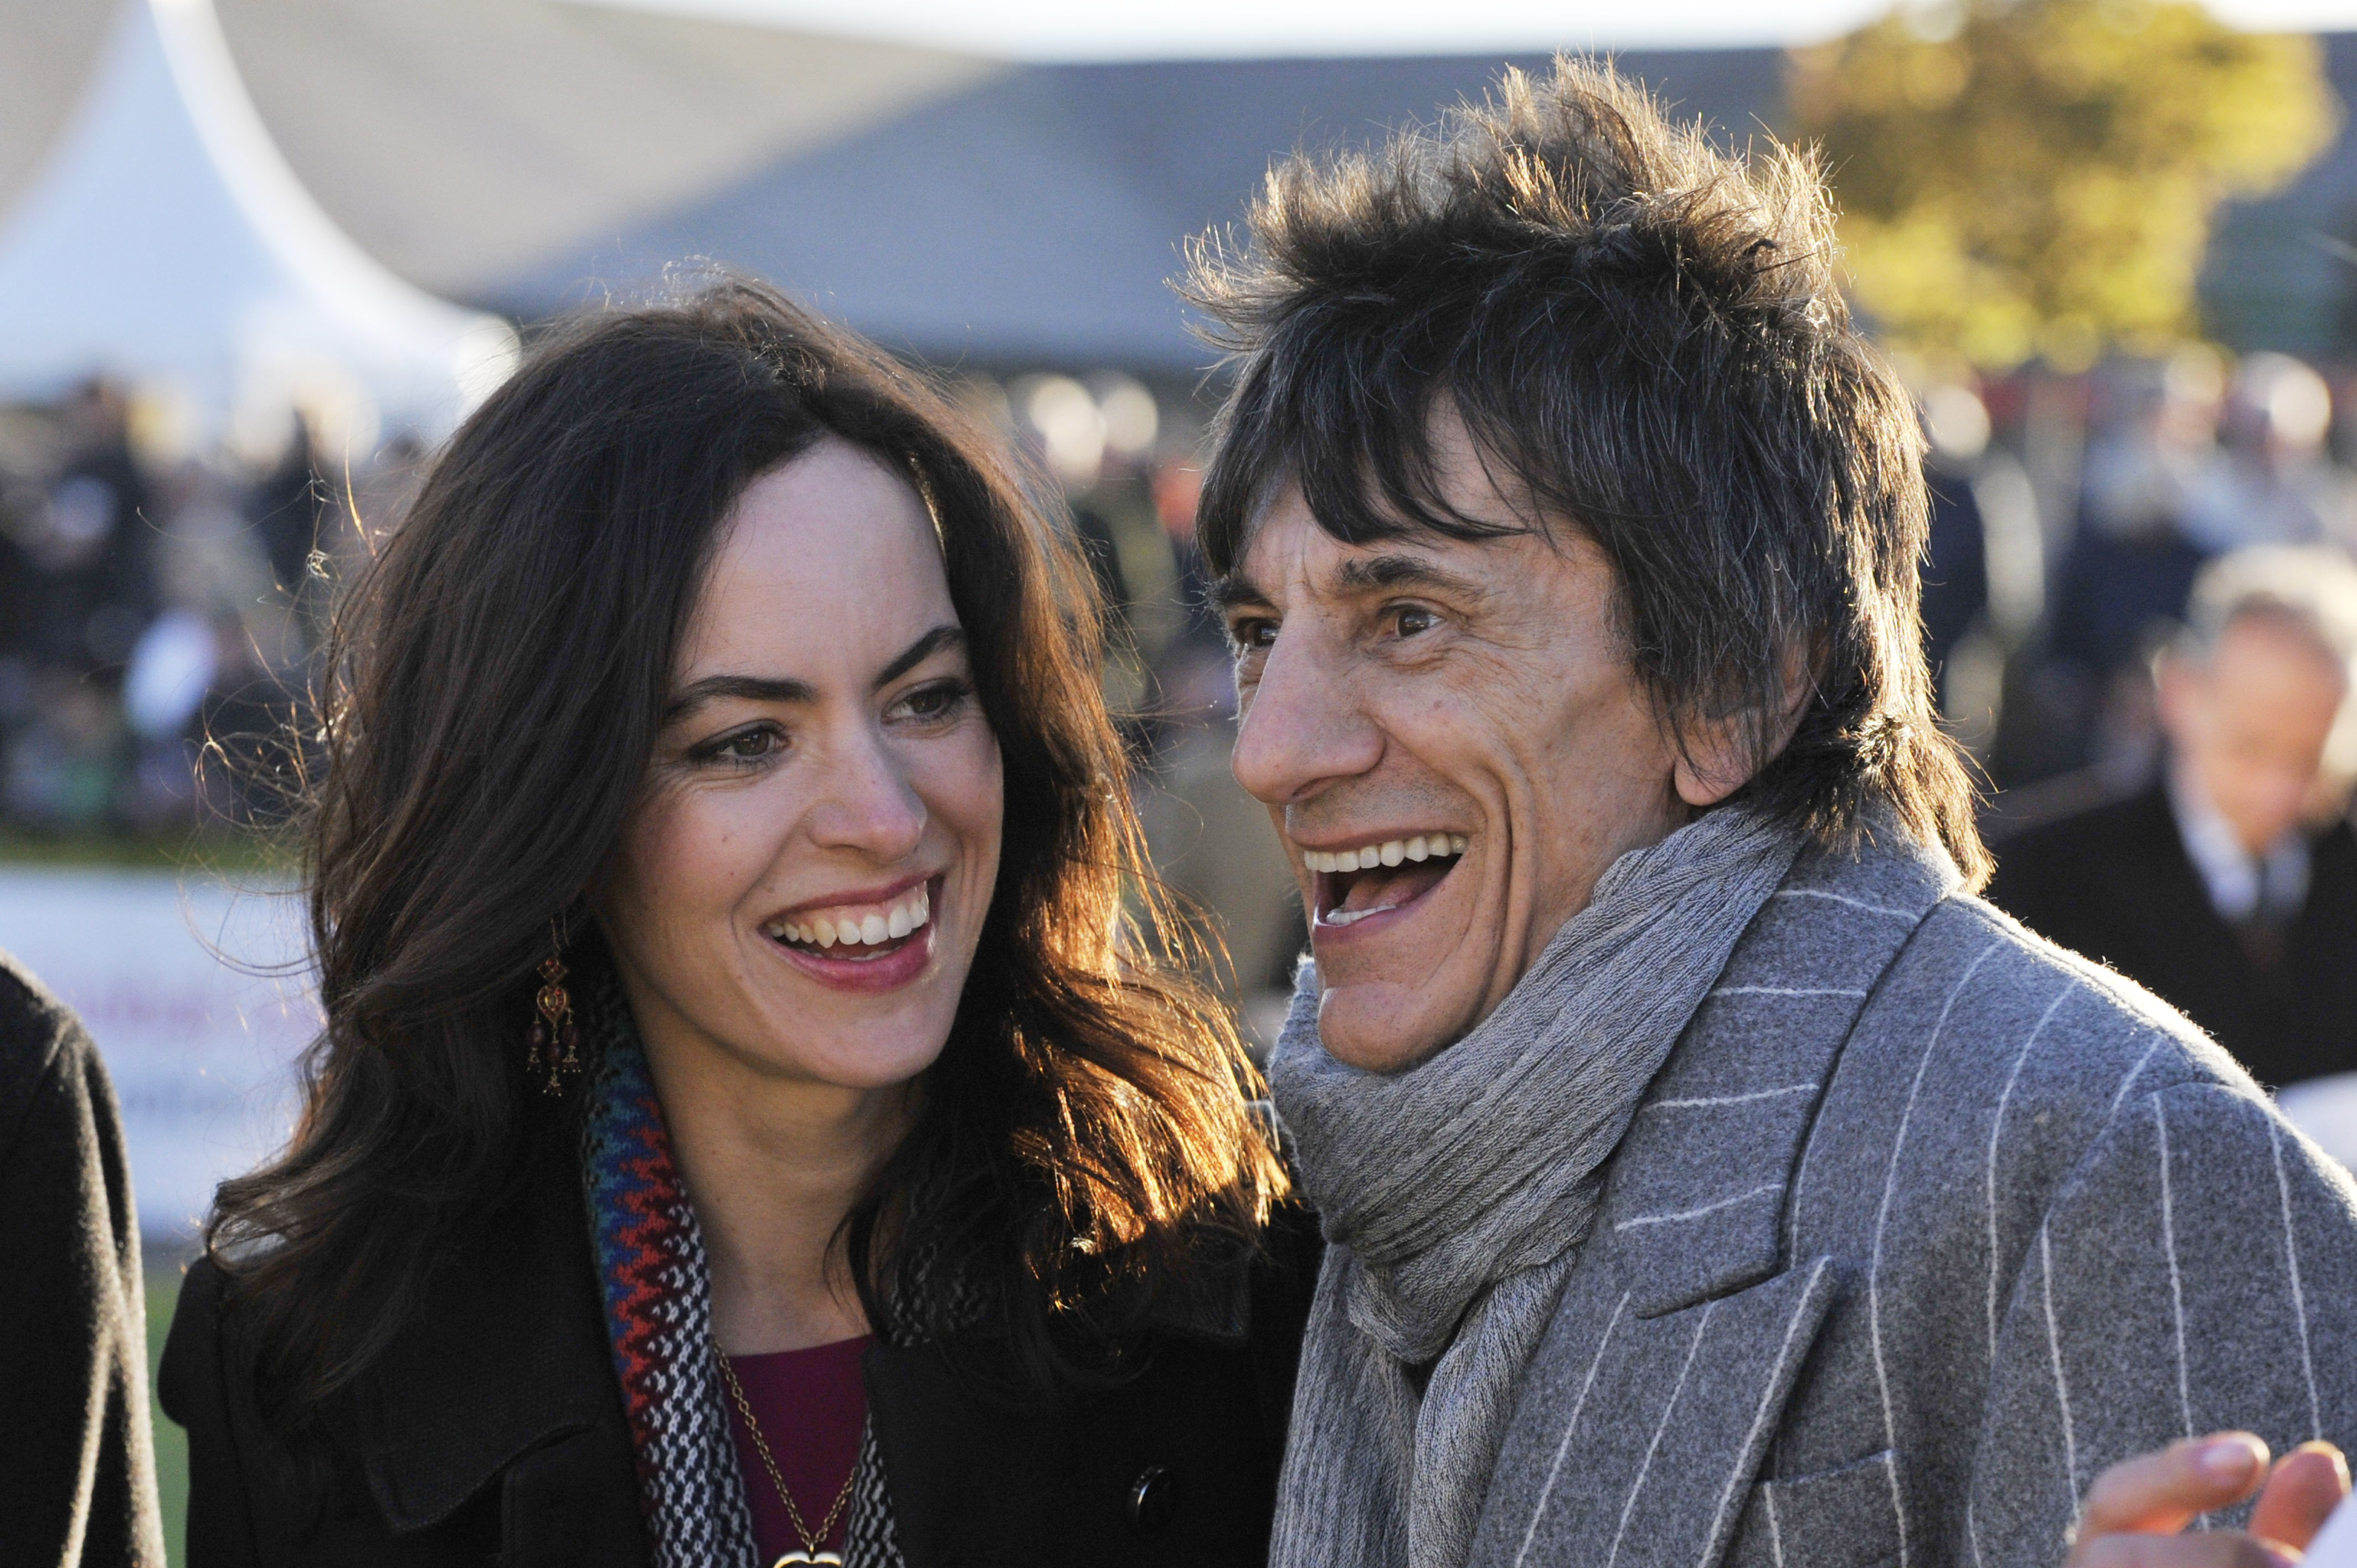 Sally Humphreys and Ronnie Wood attends the Punchestown Racecourse in Naas, Ireland on April 30, 2015 | Photo: Getty Images